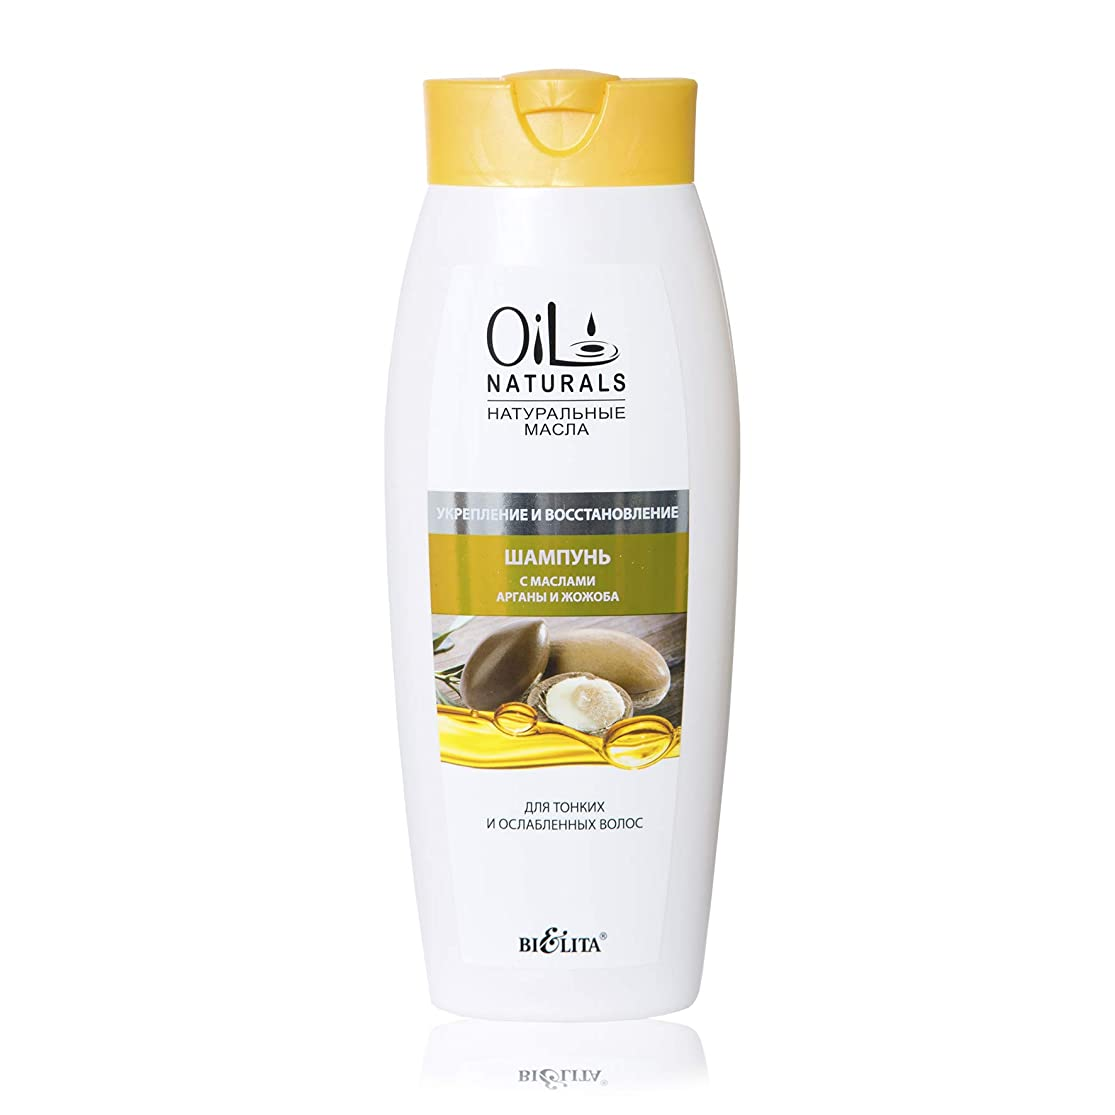 オーバーヘッド凝縮する必要条件Bielita & Vitex Oil Naturals Line | Strengthening & Restoring Shampoo for Thin Hair, 430 ml | Argan Oil, Silk Proteins, Jojoba Oil, Vitamins